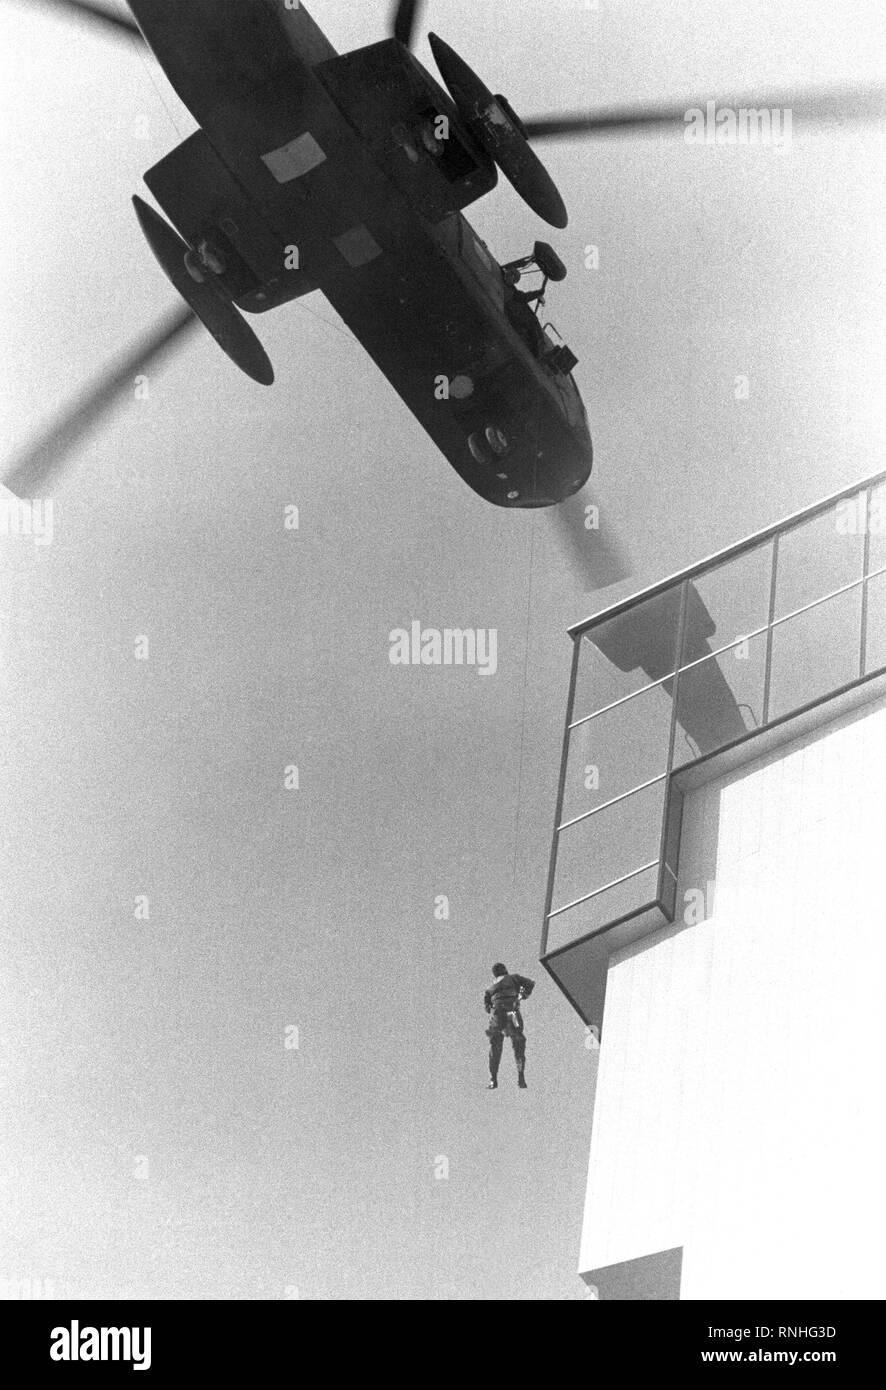 TSGT Jerry Fletcher is lowered from a hovering CH-3E Jolly Green Giant helicopter to a balcony of the blazing MGM Grand Hotel.  The airman is a 302nd Special Operations Squadron member involved in the rescue mission. - Stock Image